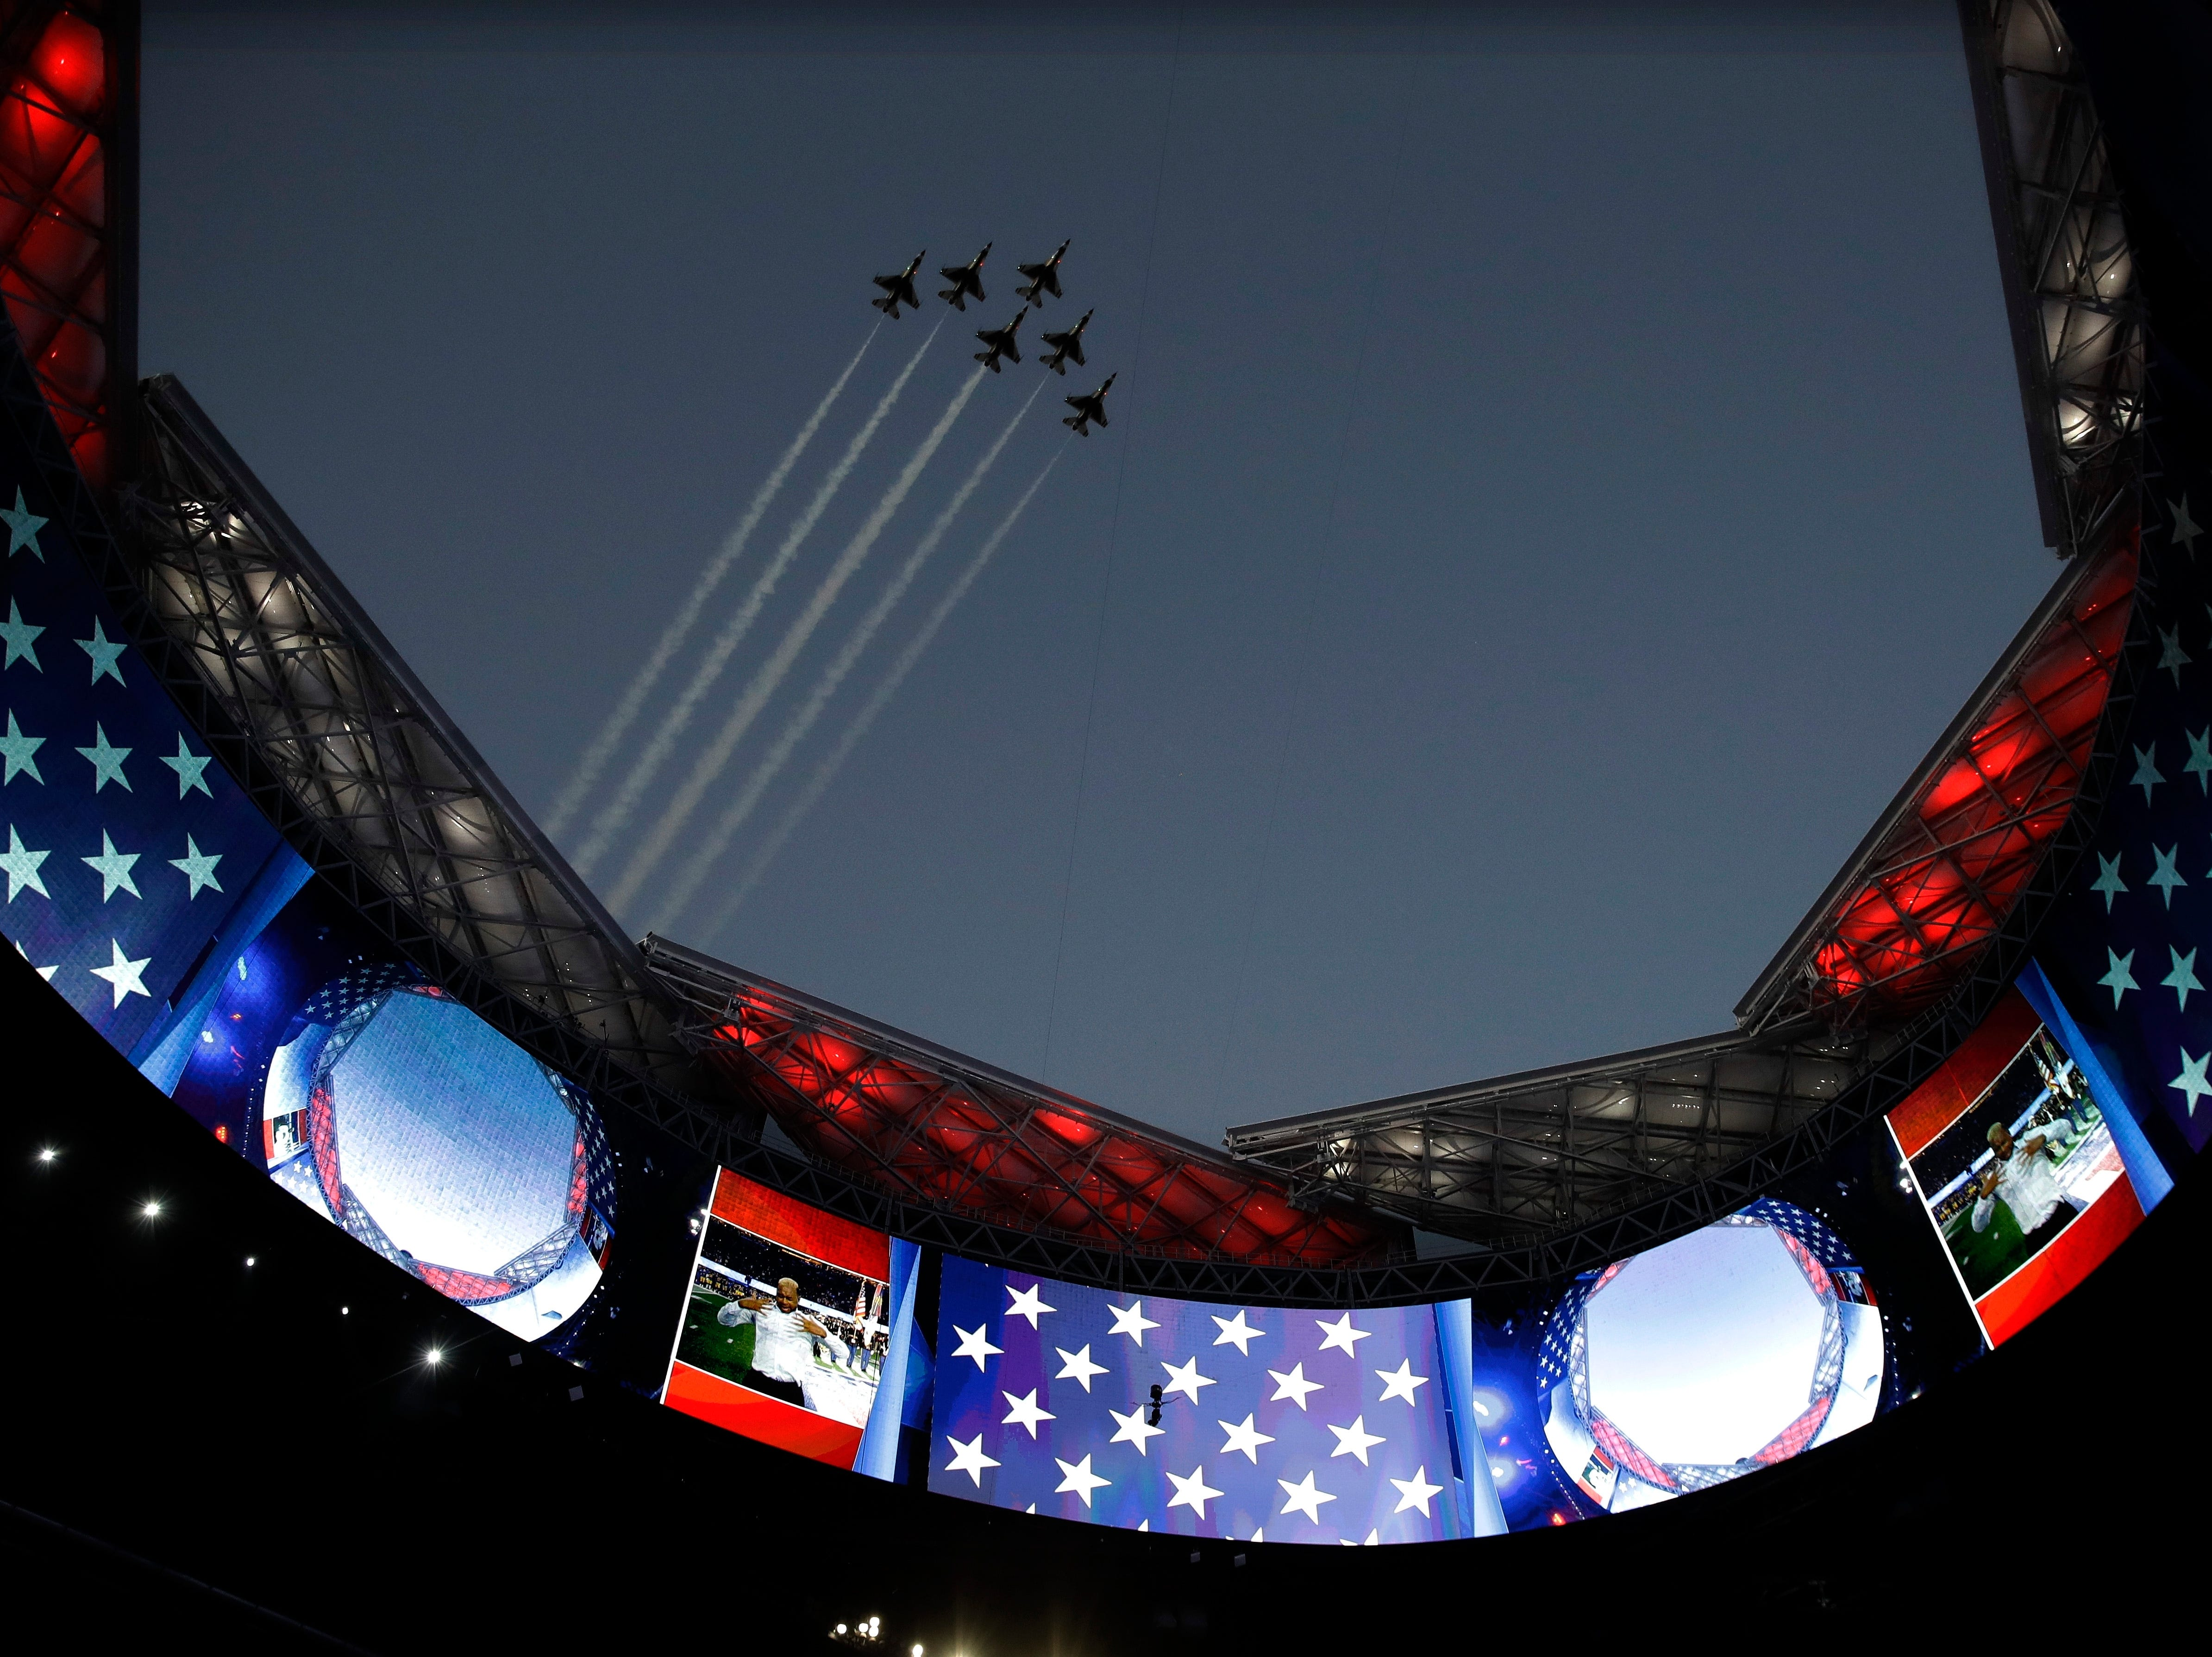 U.S. Air Force Thunderbirds fly over the open roof of the Mercedes-Benz Stadium before the game.